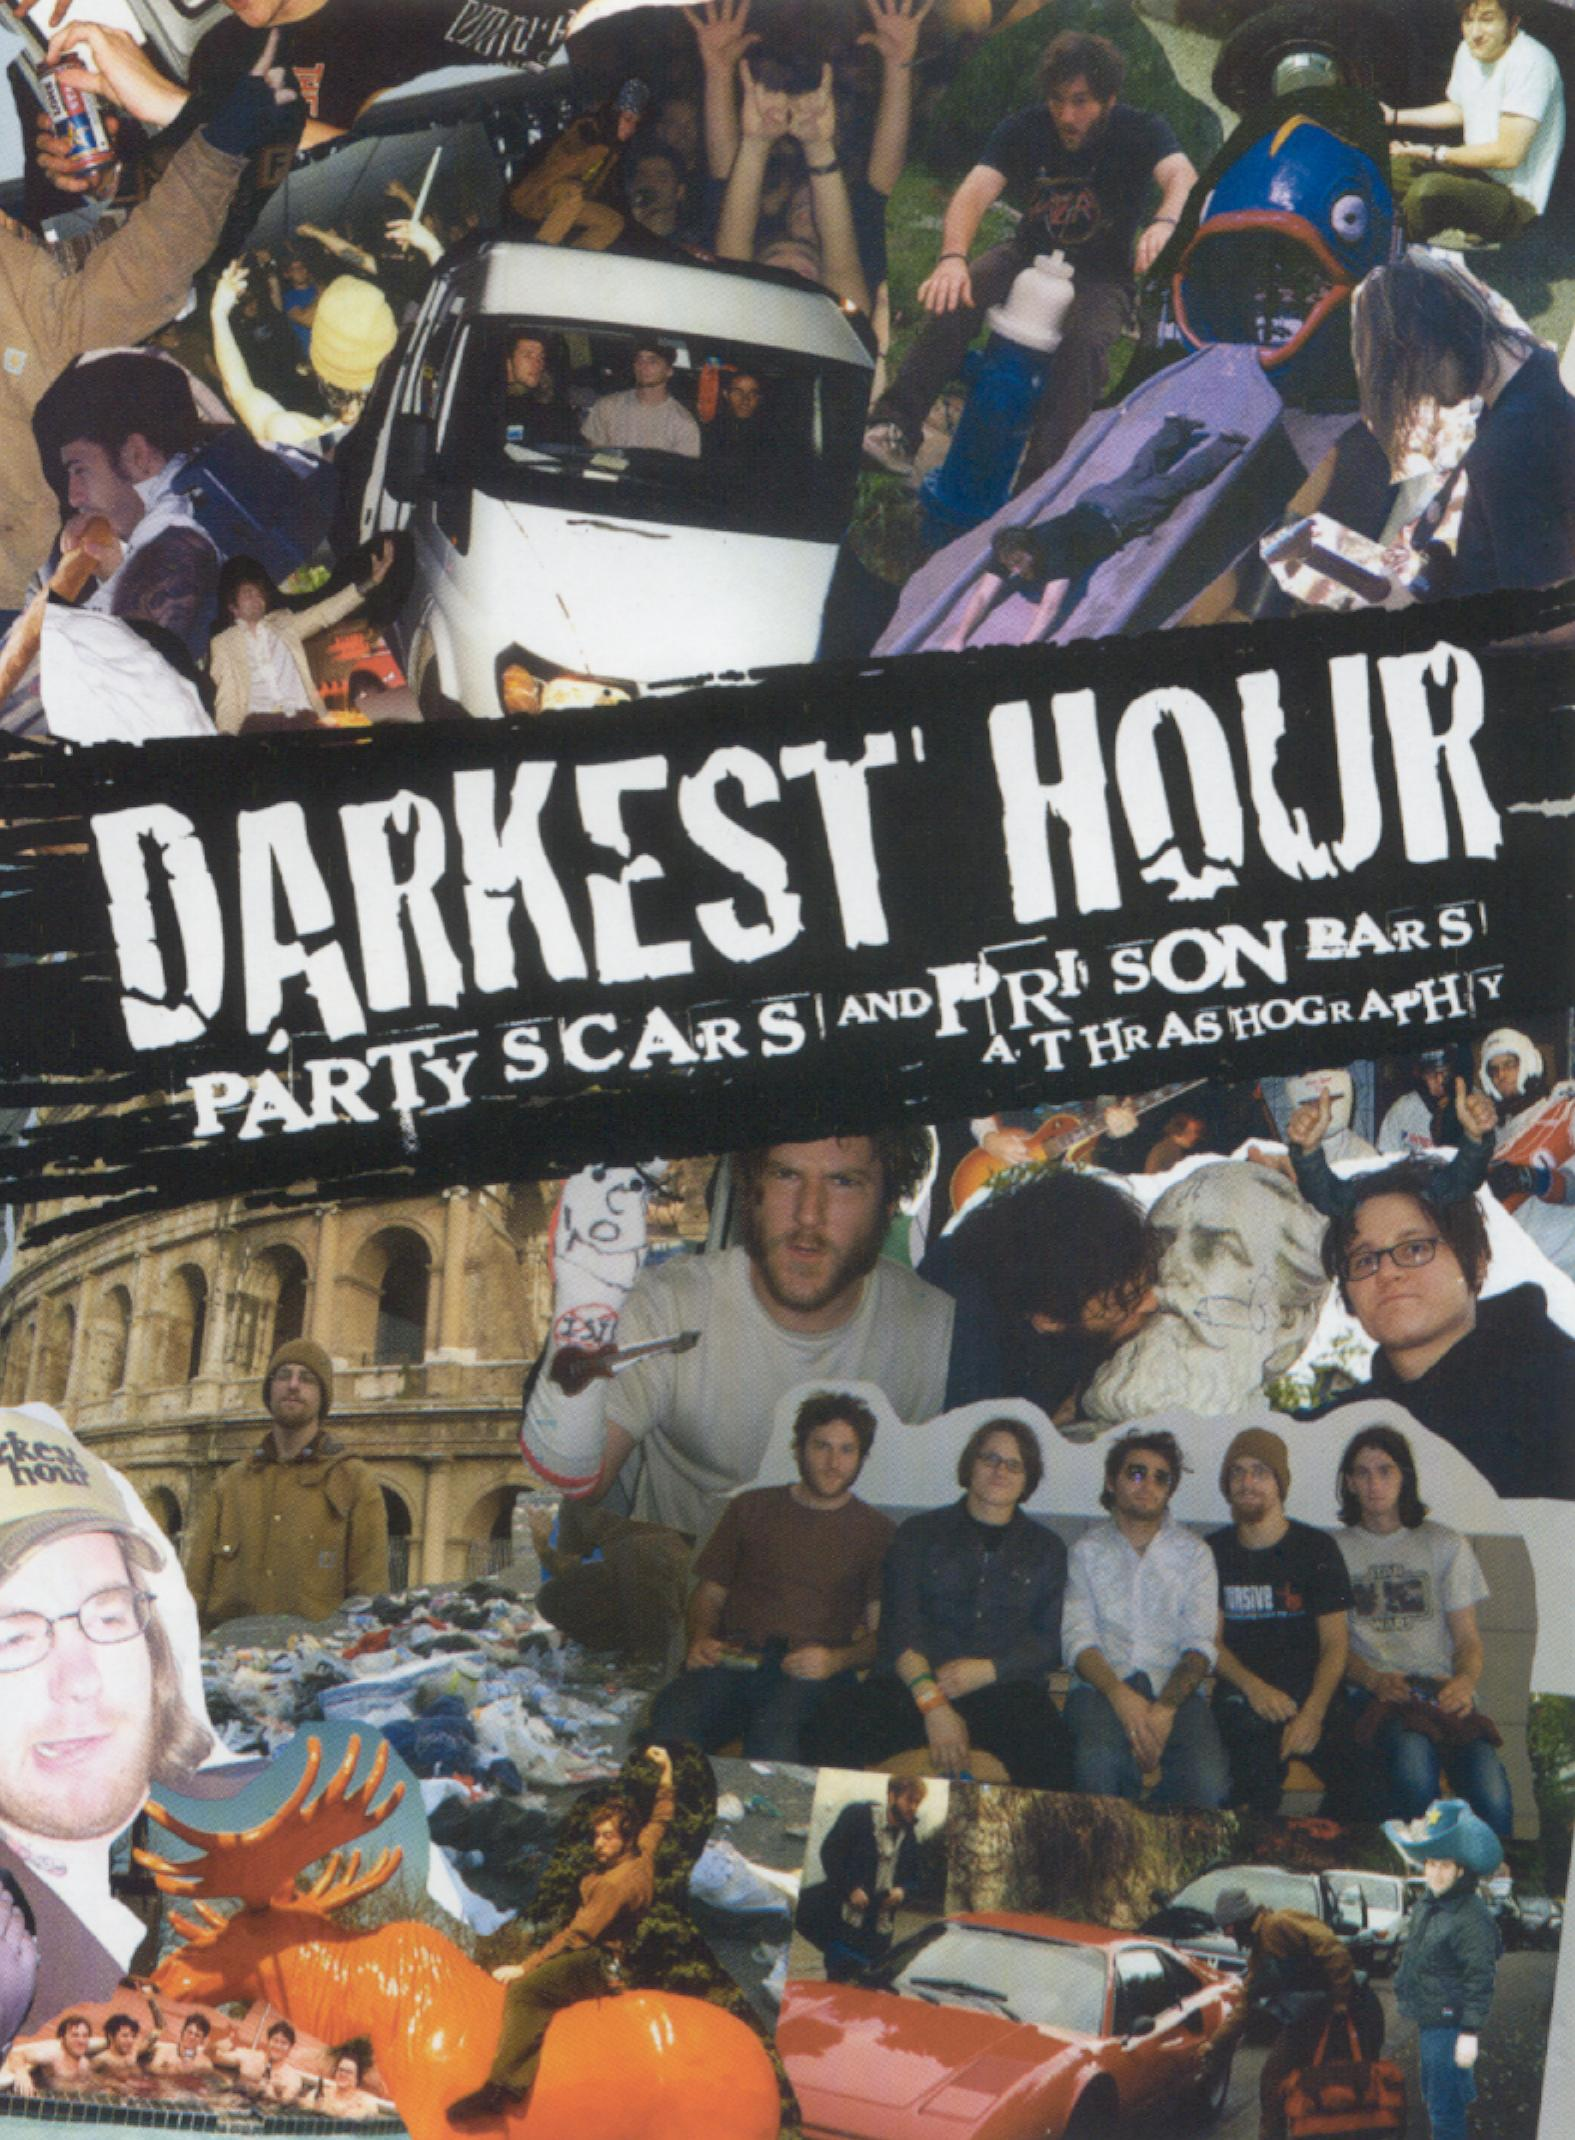 Darkest Hour: Party Scars and Prison Bars - A Thrashography